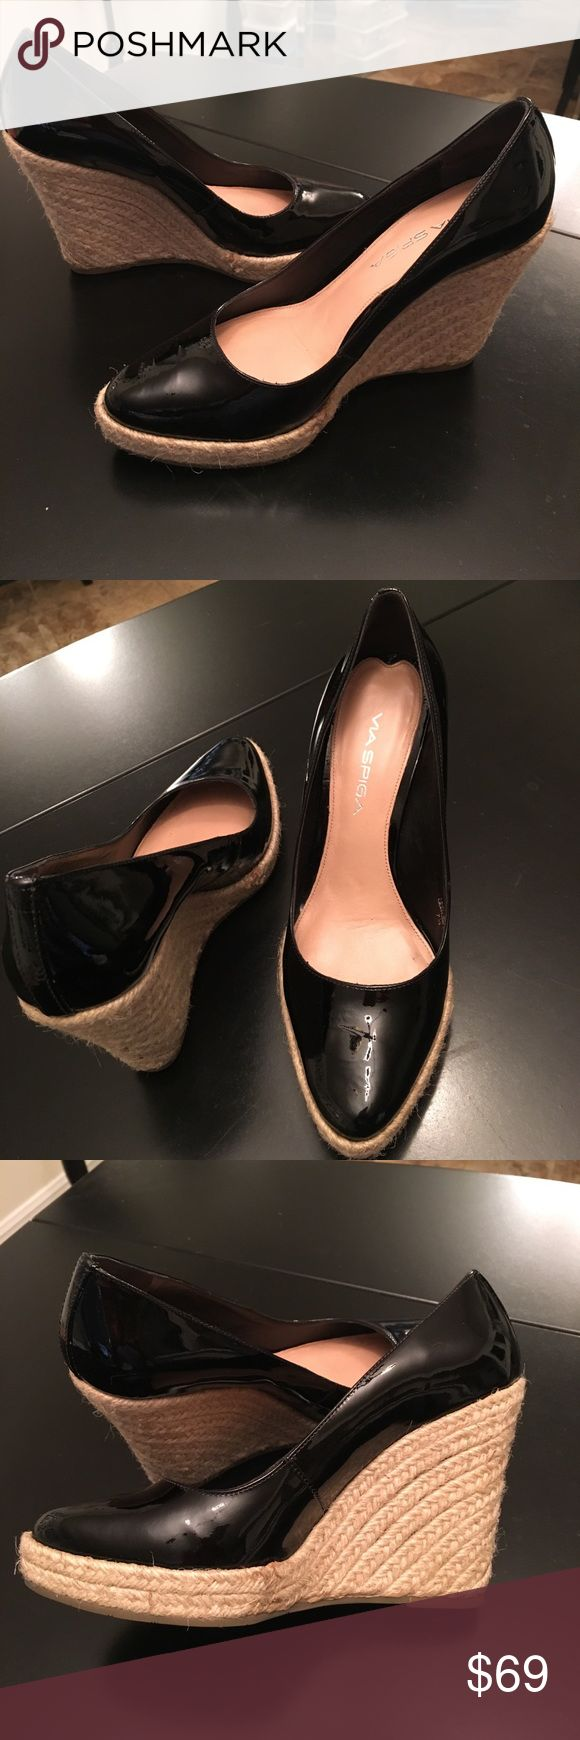 Via Spiga patent leather espadrilles Via Spiga patent leather espadrilles. Worn once for less than an hr. Excellent condition. Kept in plastic box for protection Via Spiga Shoes Espadrilles